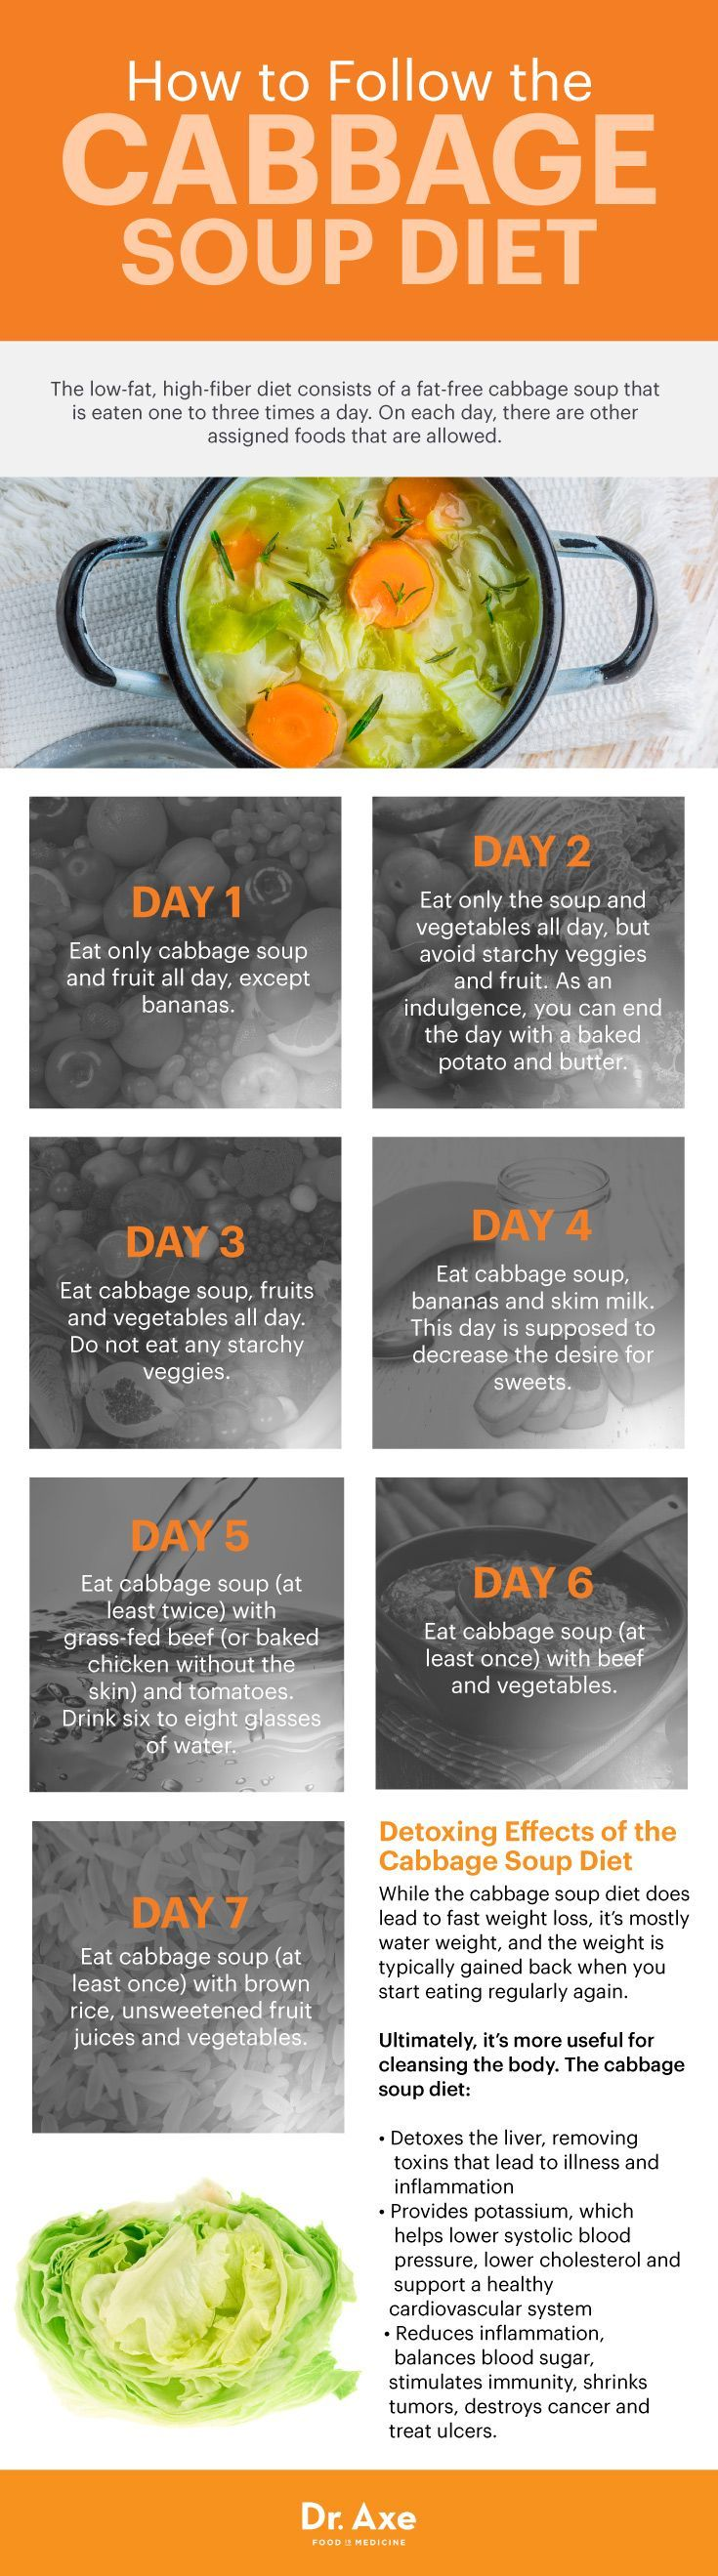 1 – Is Cabbage Good For Weight Loss?  Cabbage is largely associated with weight loss because of the cabbage soup diet. The cabbage soup diet is a crash diet which requires eating large amounts of cabbage